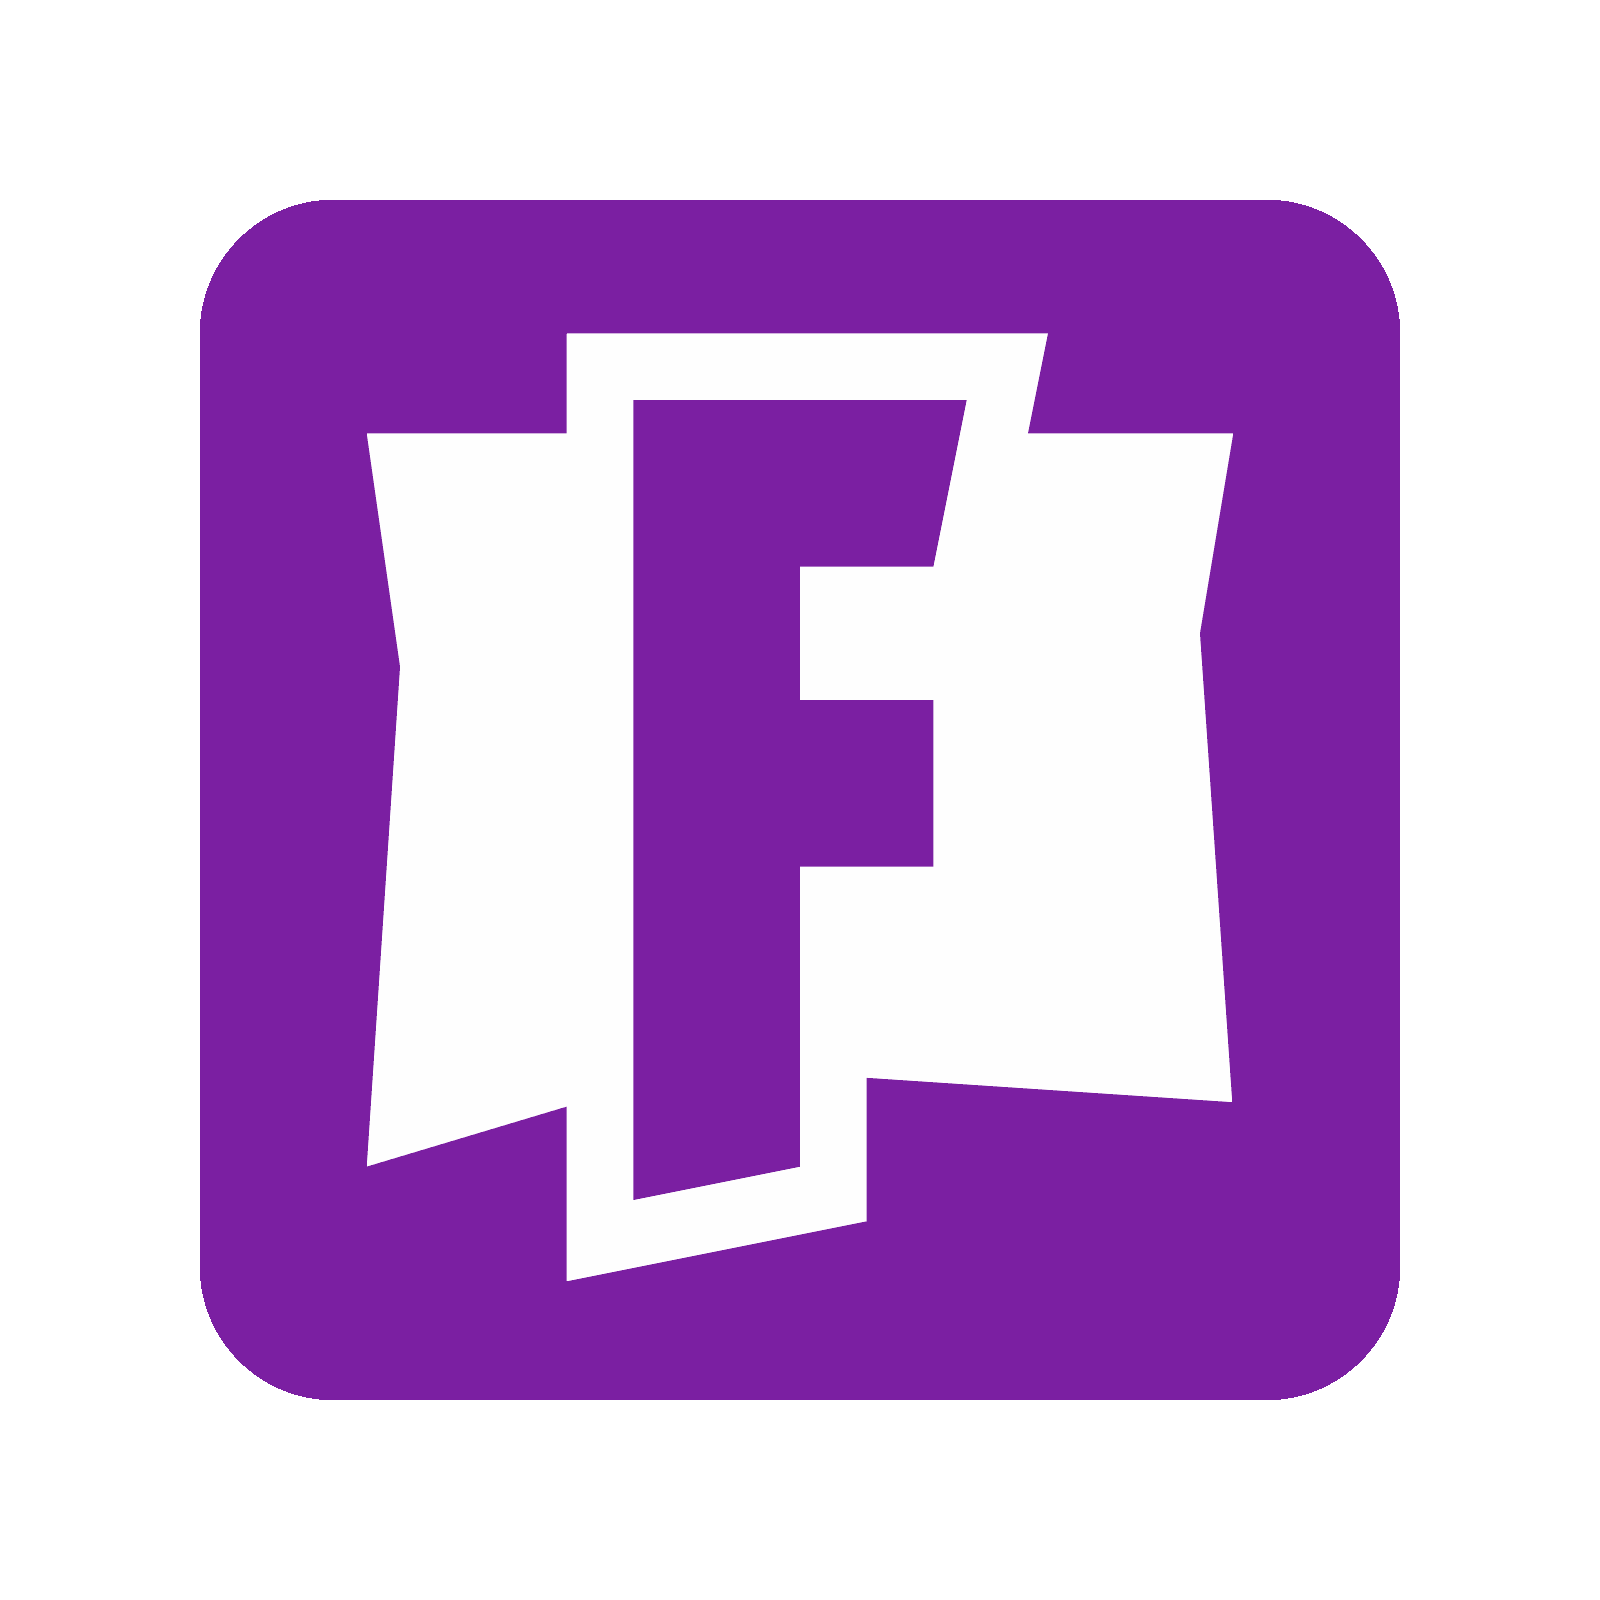 Fortnite logo png. Icon free download and